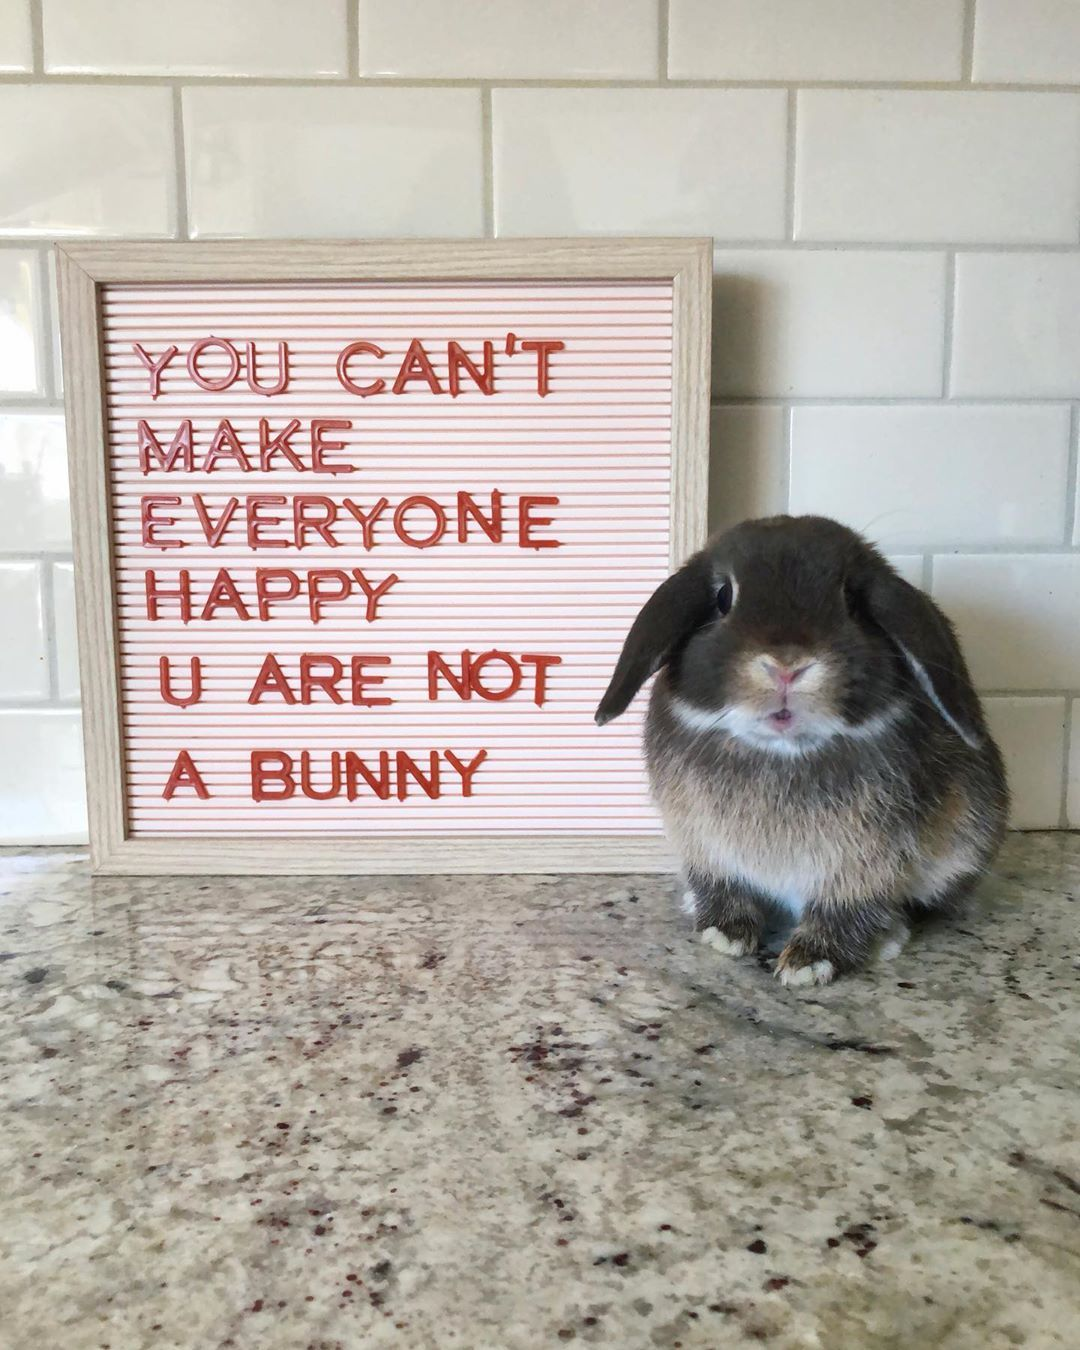 Quality advice from one bunny to any hooman...